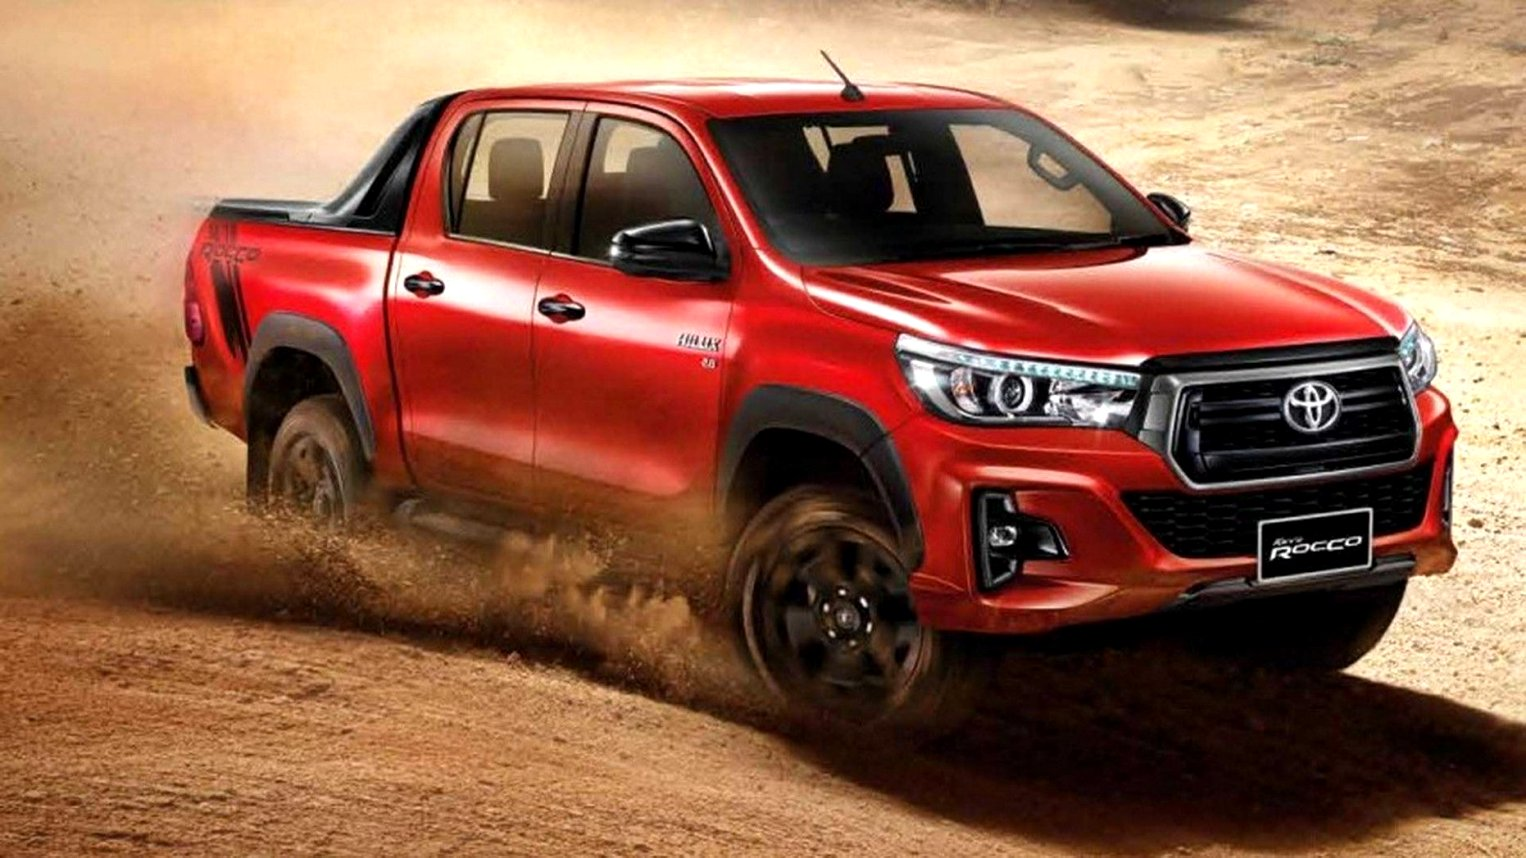 2020 toyota dakar Performance and New Engine